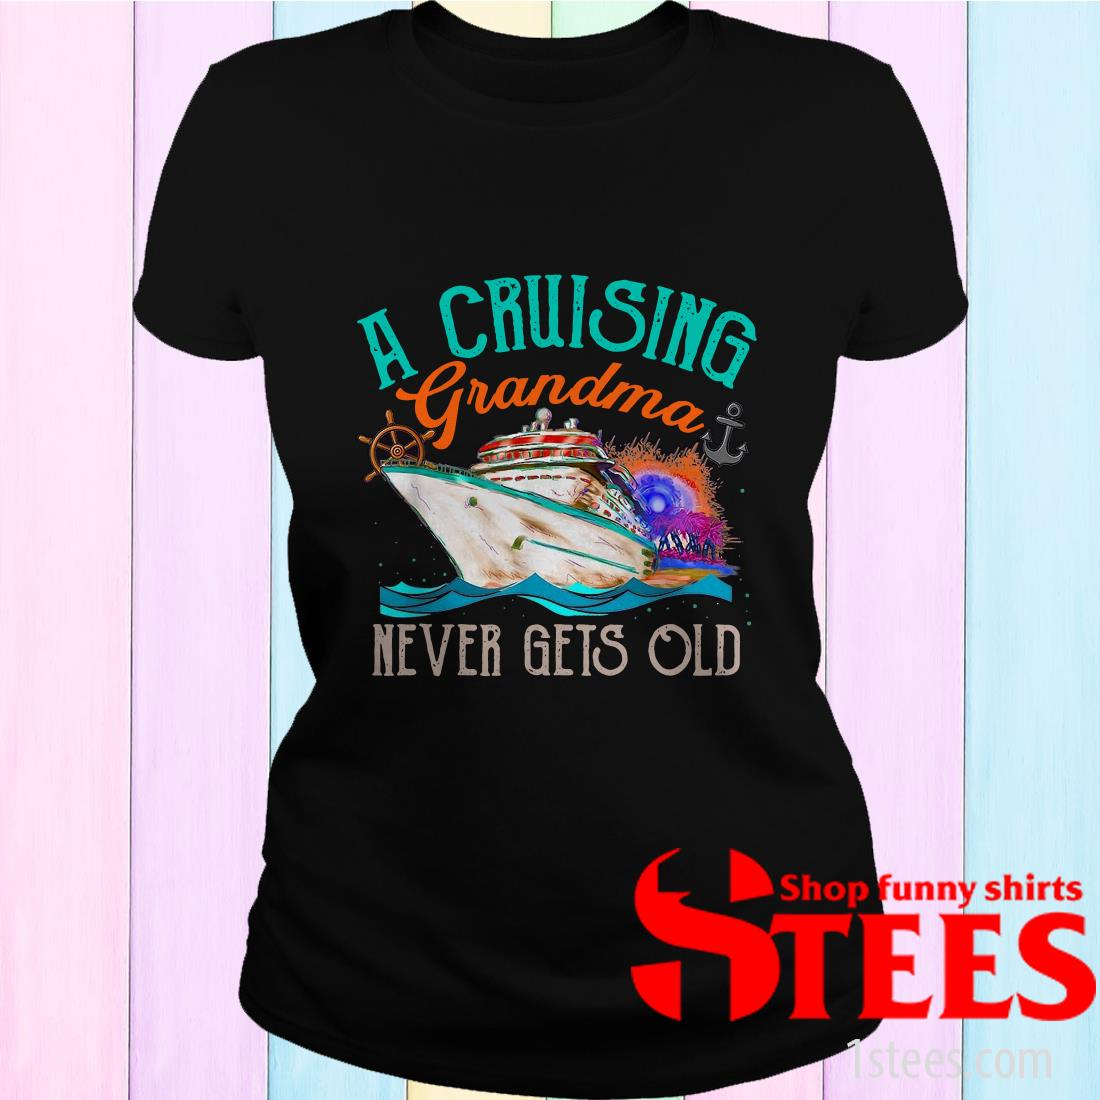 A Cruising Grandma Never Gets Old Shirt